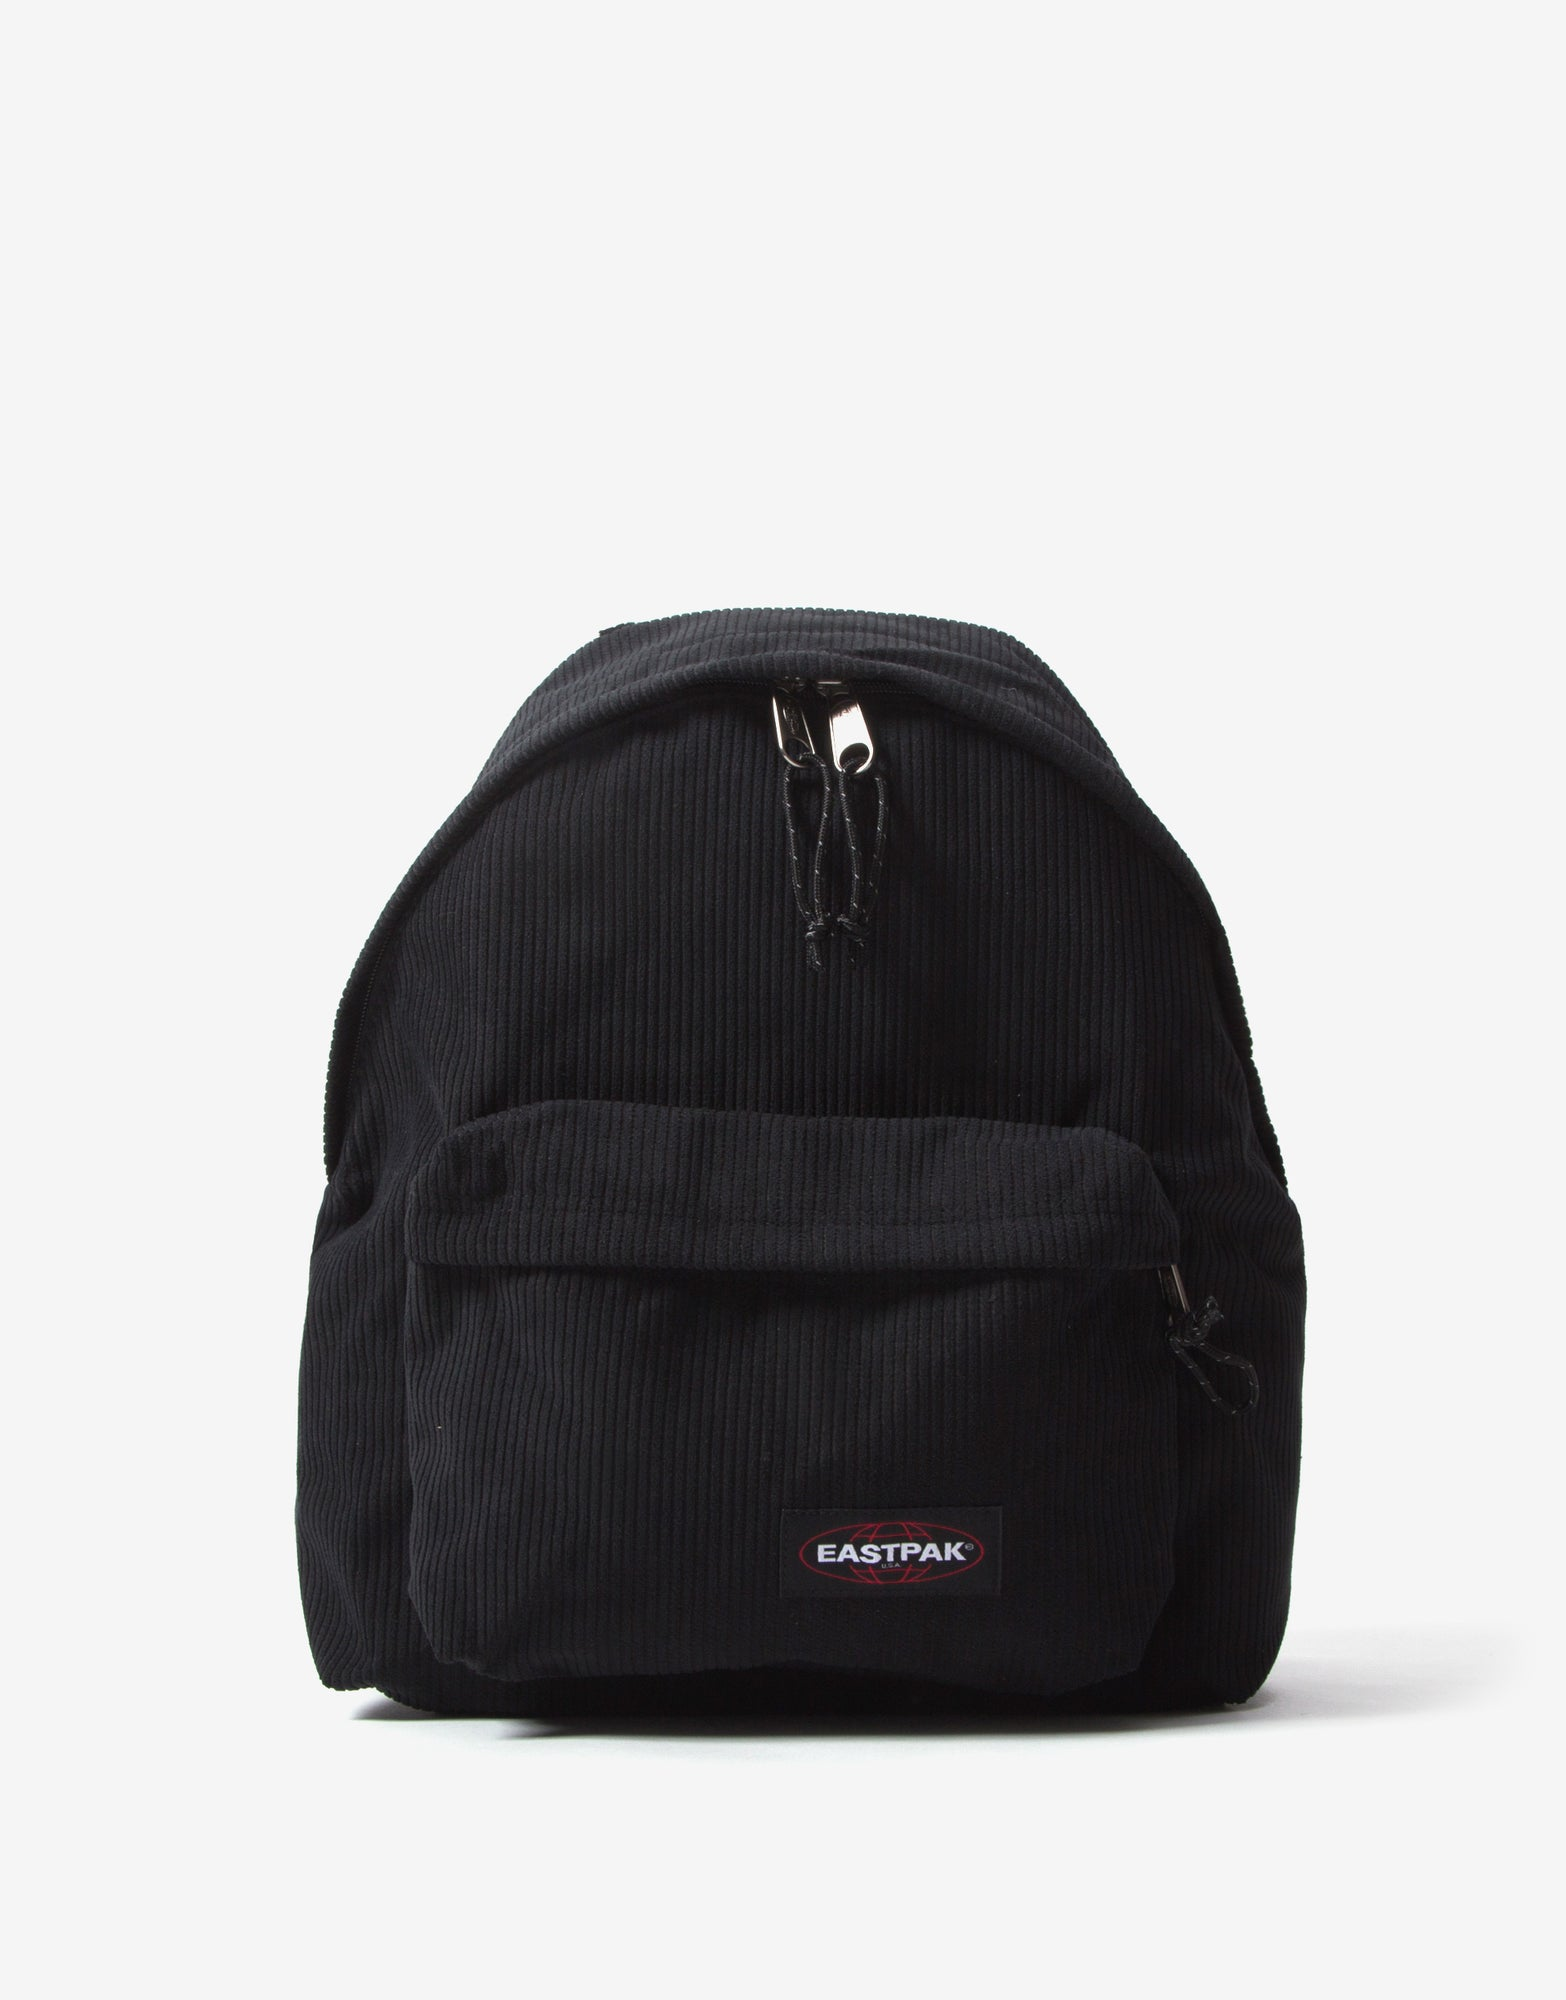 Eastpak Padded Pak'r Backpack - Cords Black